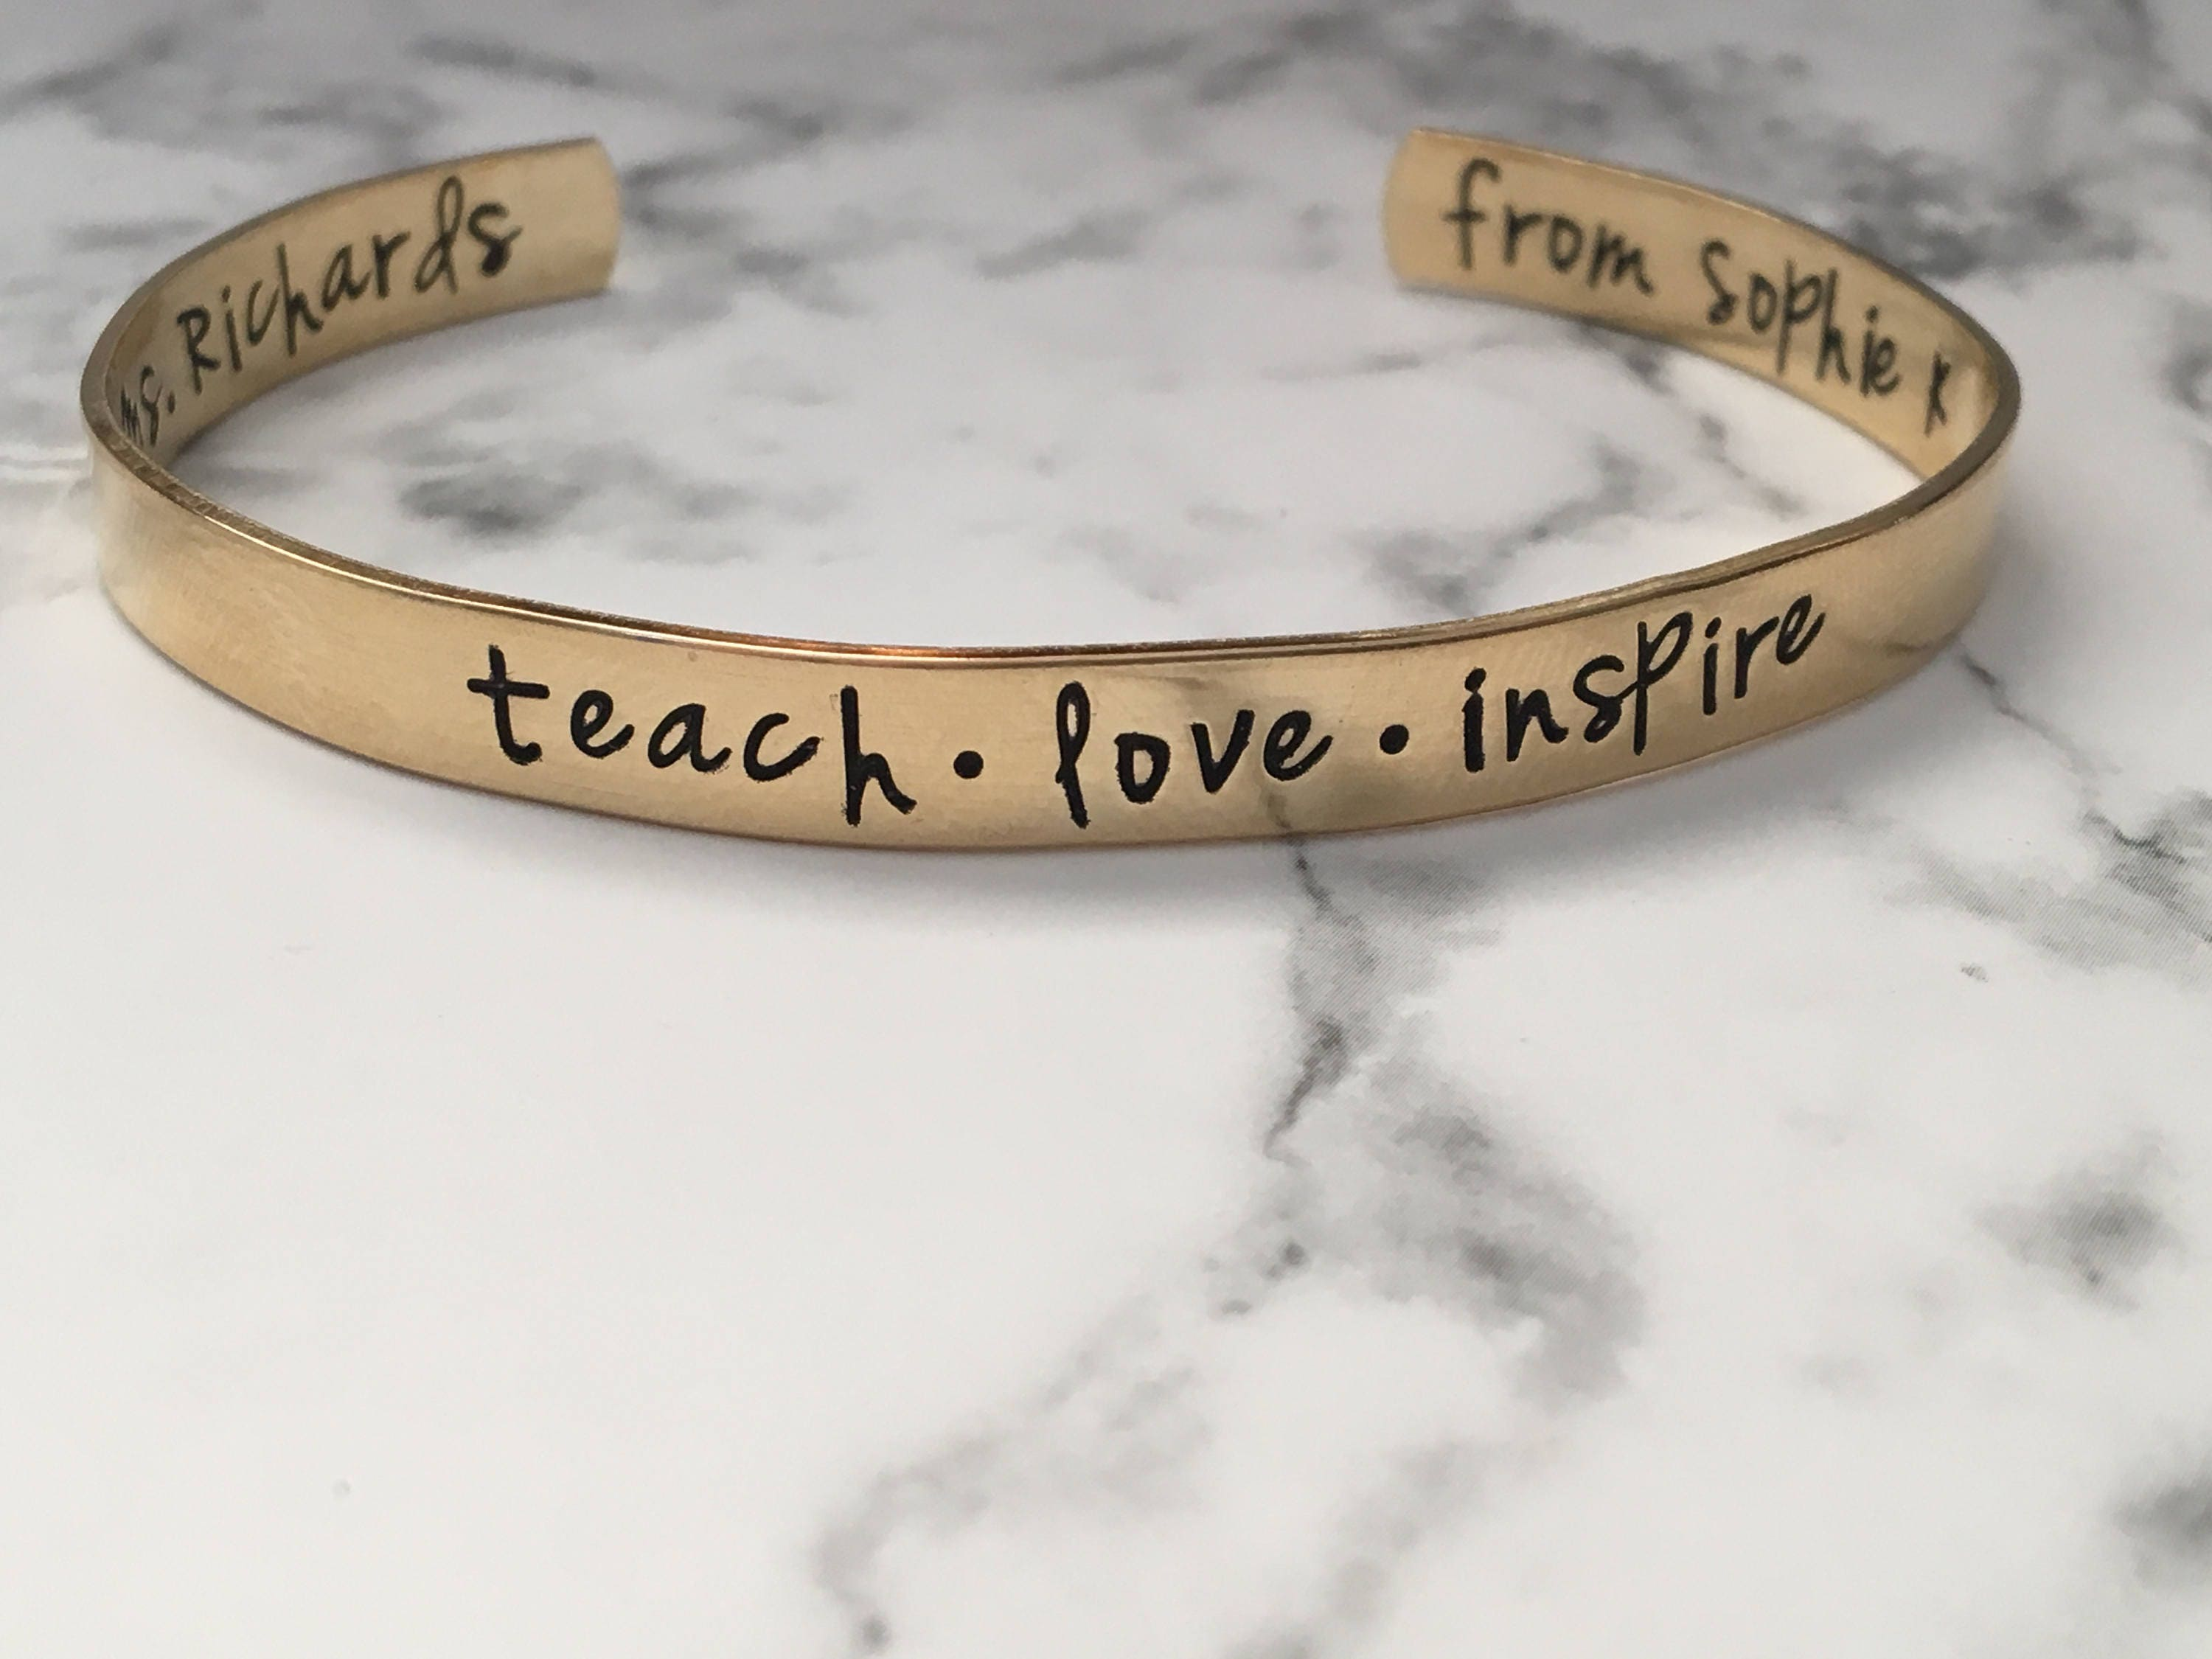 is bangles bangle loveis solid products bracelet silver patient scripture sterling love corinthians verse